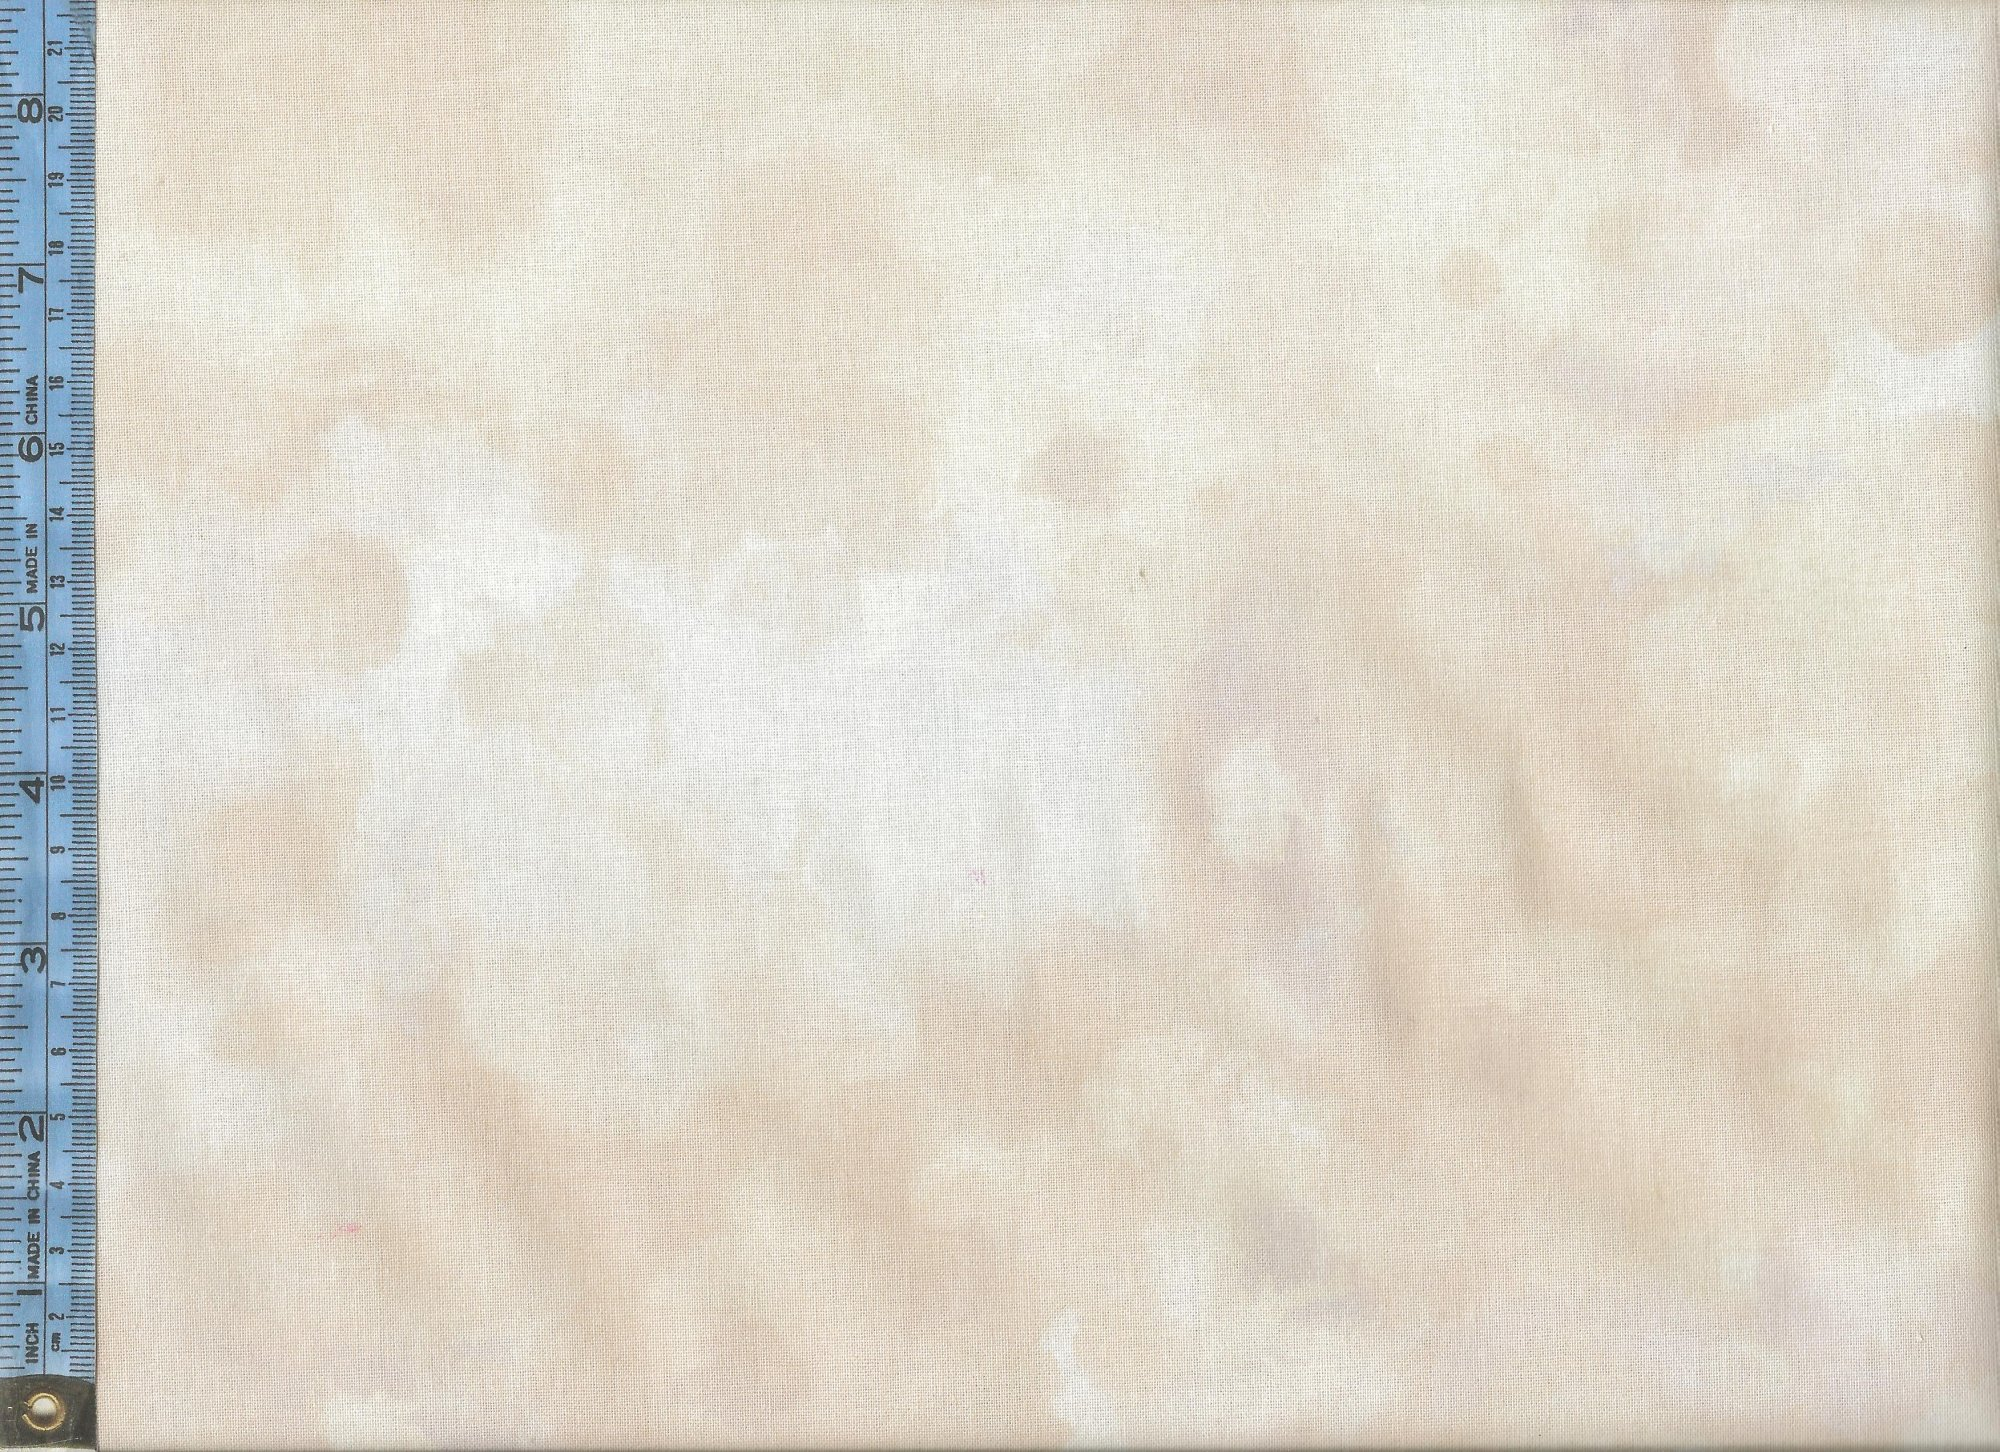 By the Sea - (3163-44) mottled cream and beige